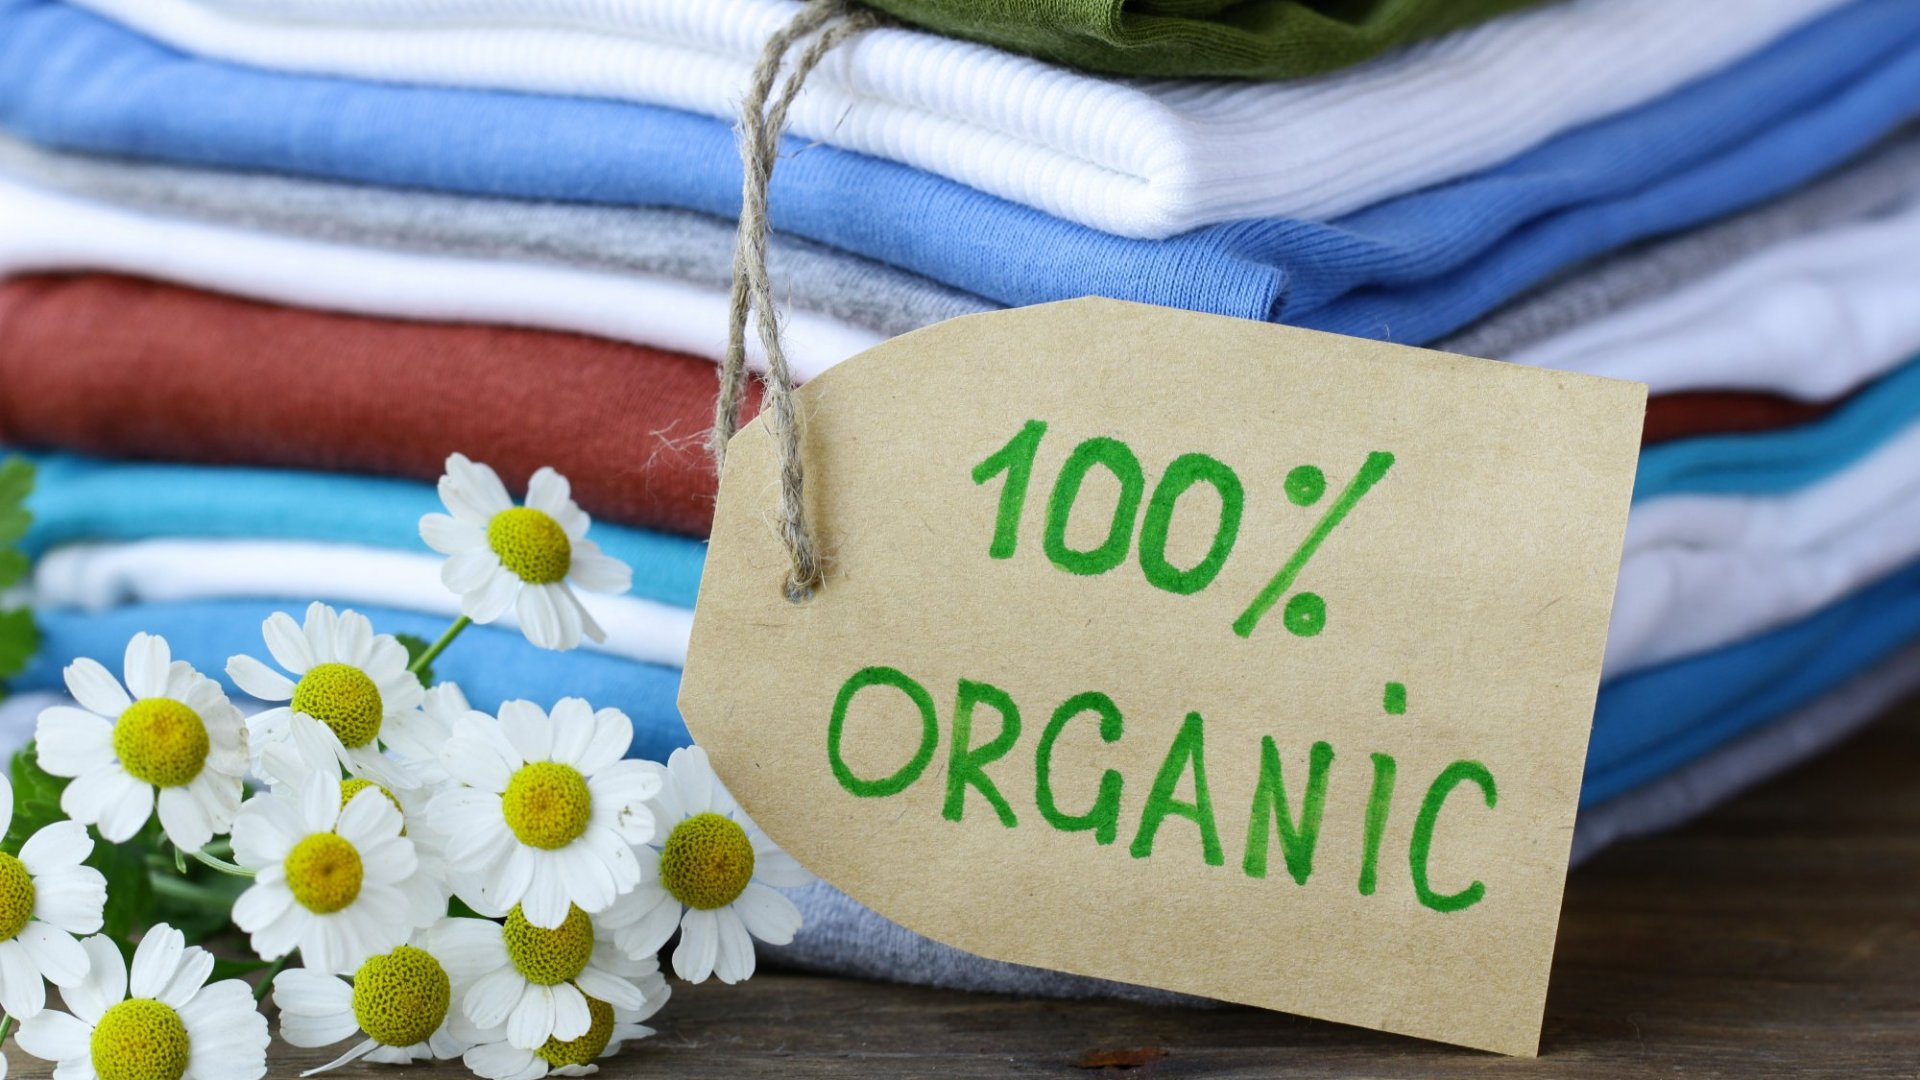 This Is the Next Big Thing in the $39 BillionOrganicProducts Industry